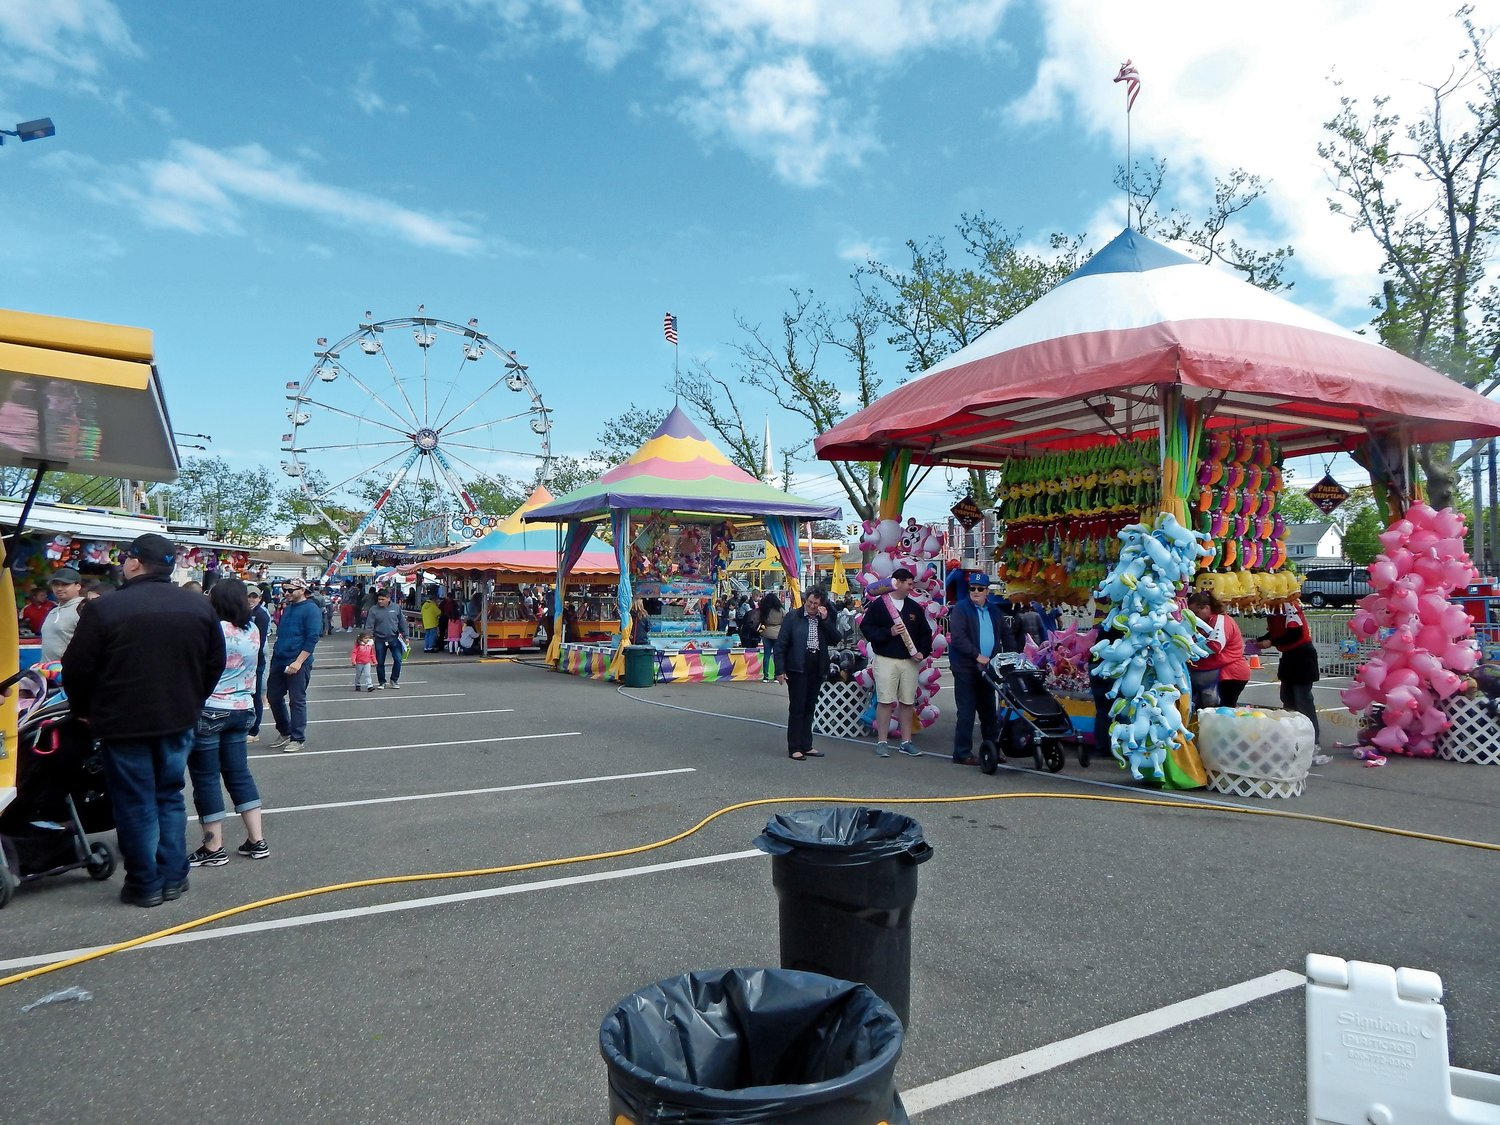 The Valley Stream Presbyterian Church held its second annual carnival in 2017.